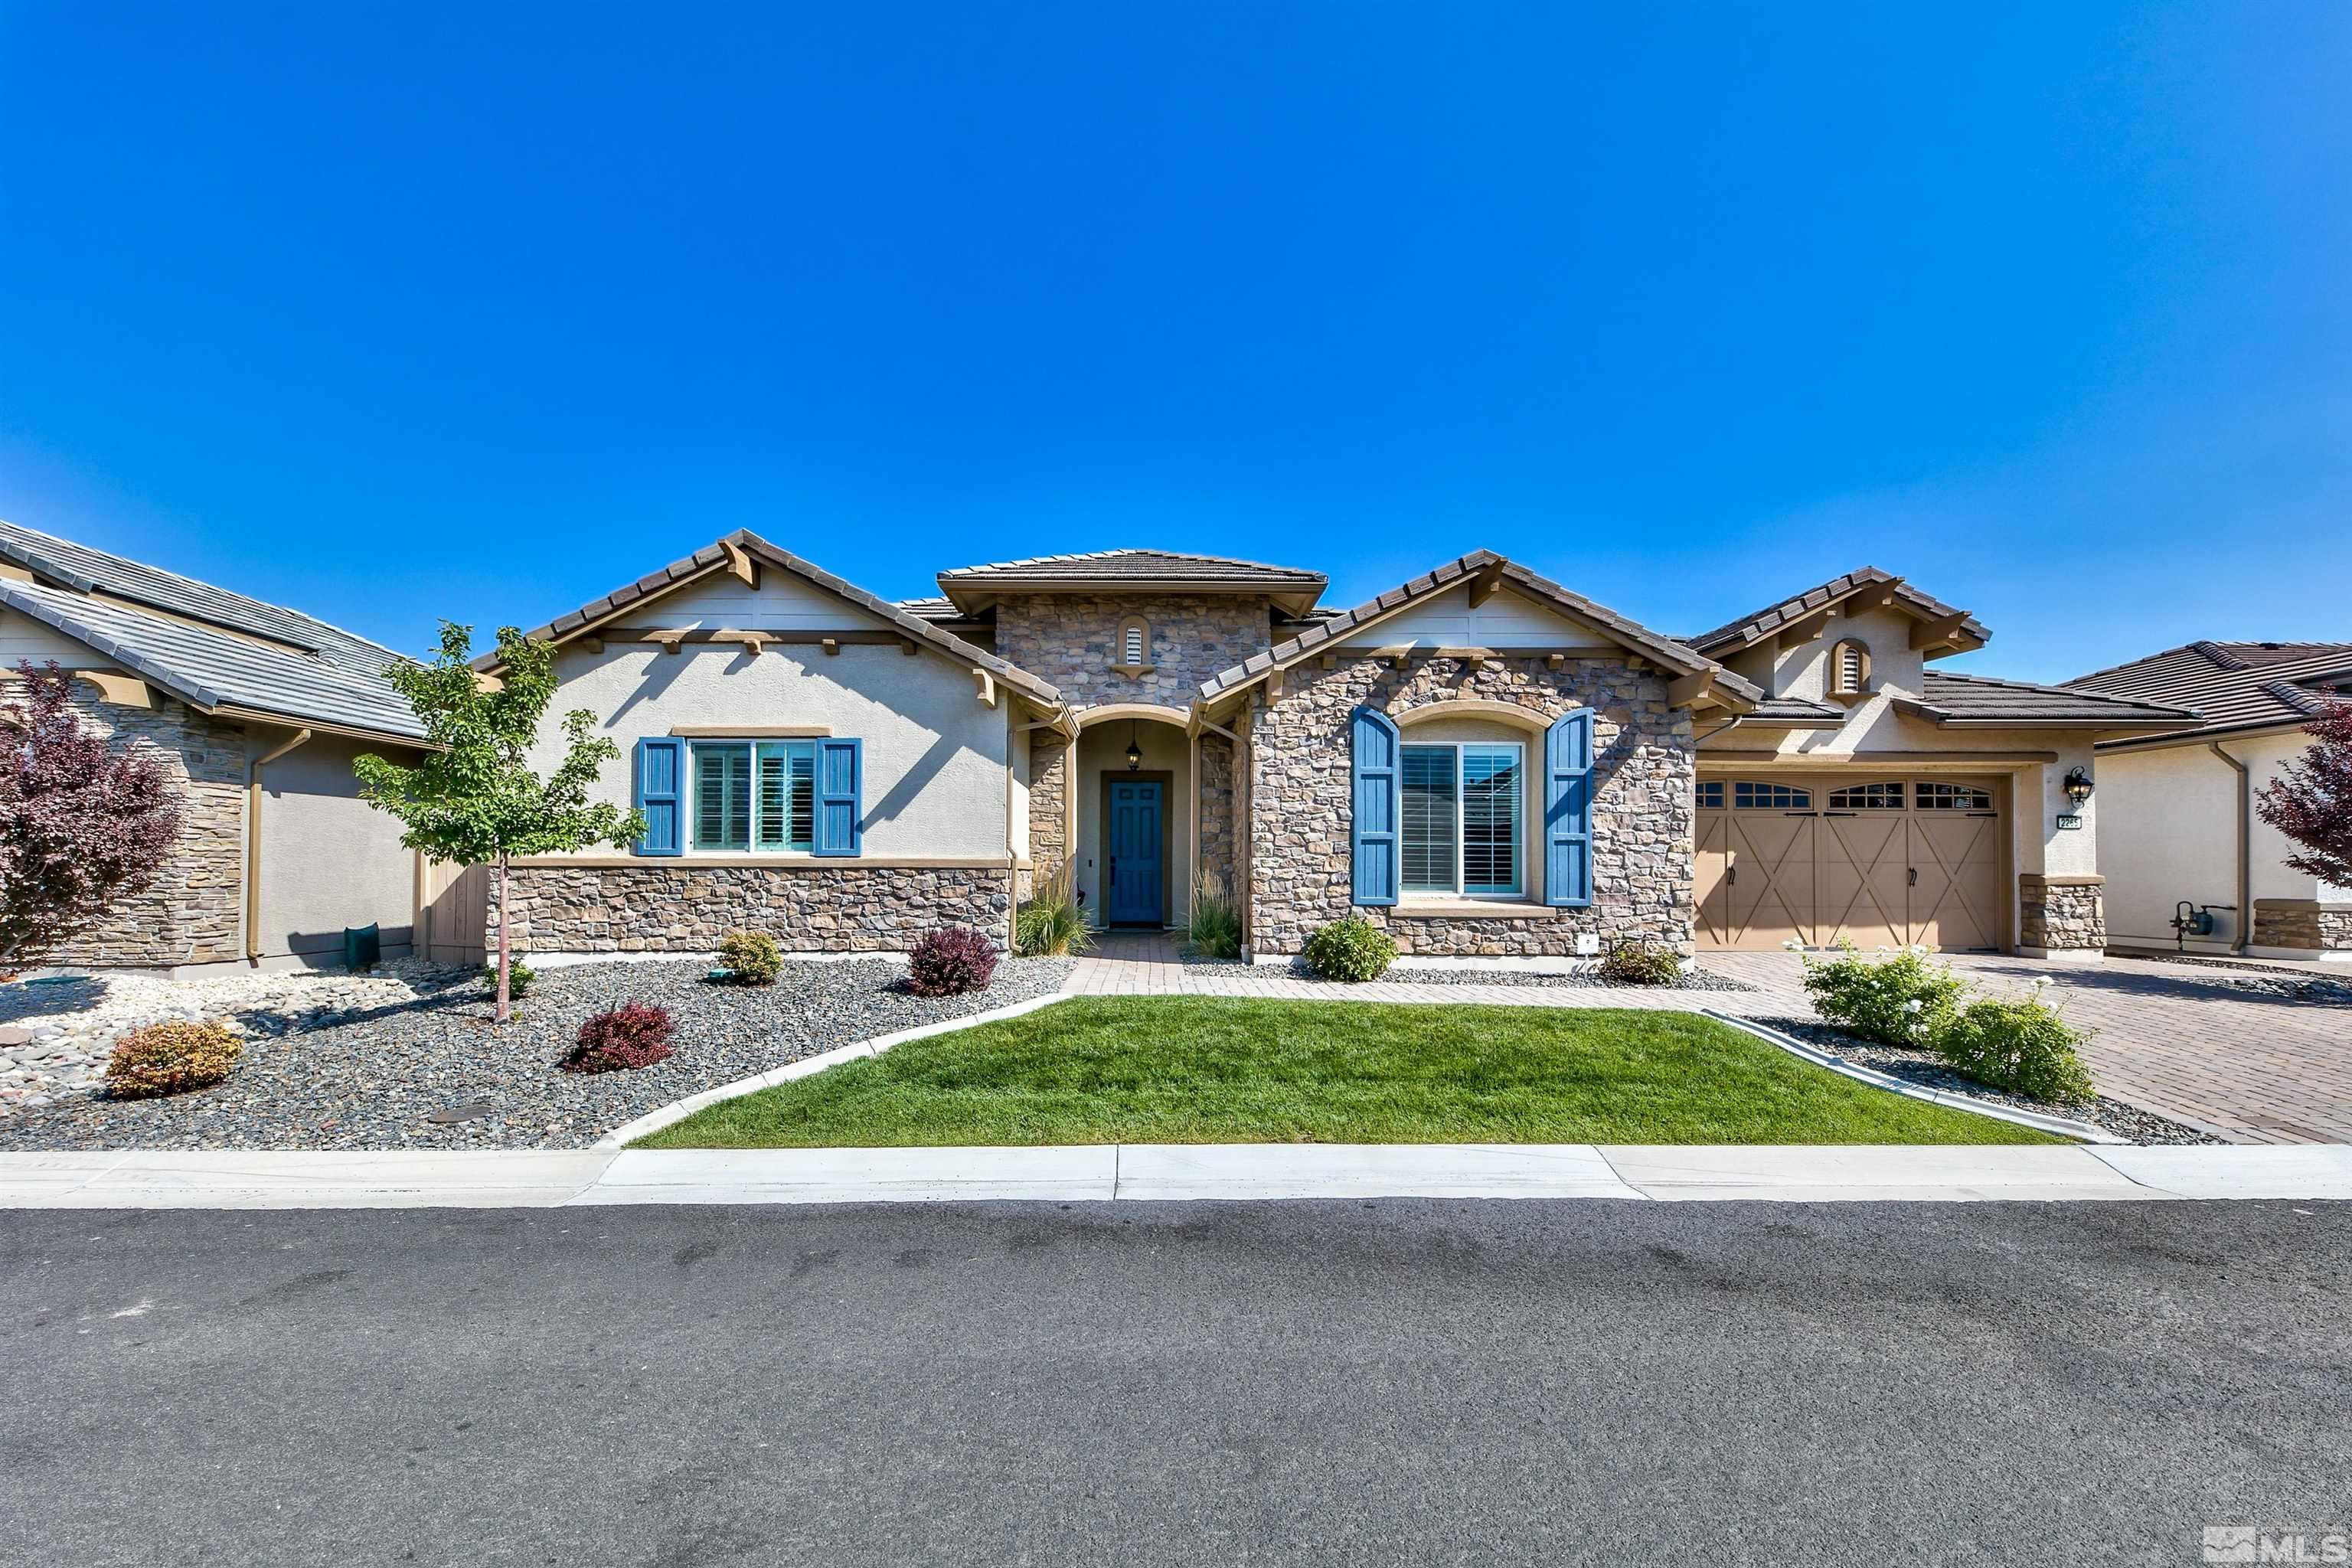 Image for 2265 Hyperion LN, Reno, NV 89521